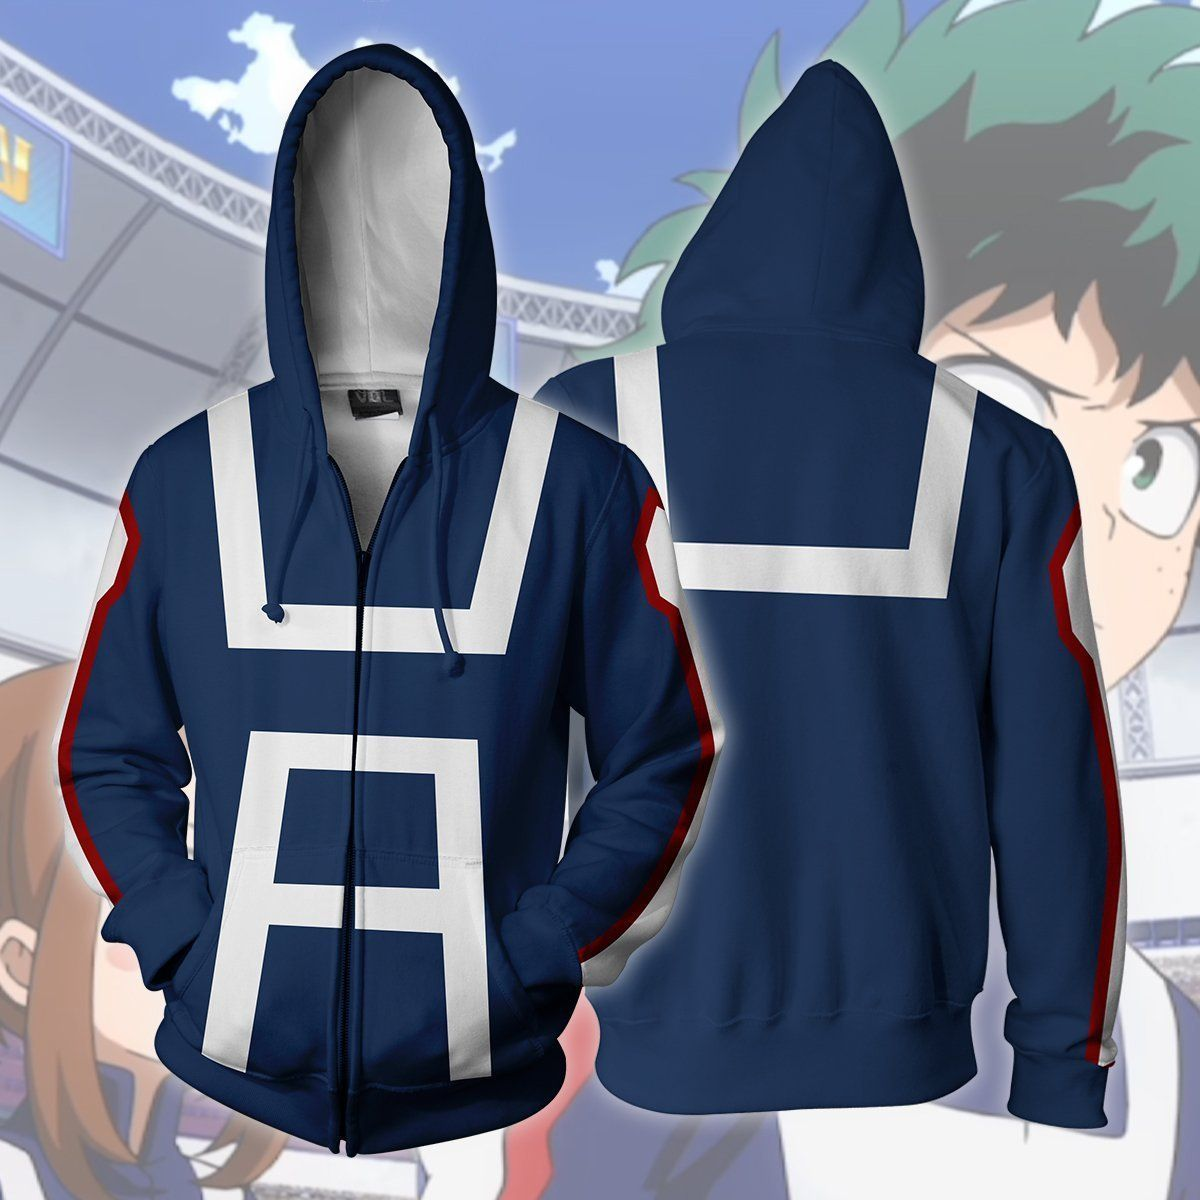 Anime My Hero Asui Tsuyu Hoodie Sweatshirt Jacket Coat HOT